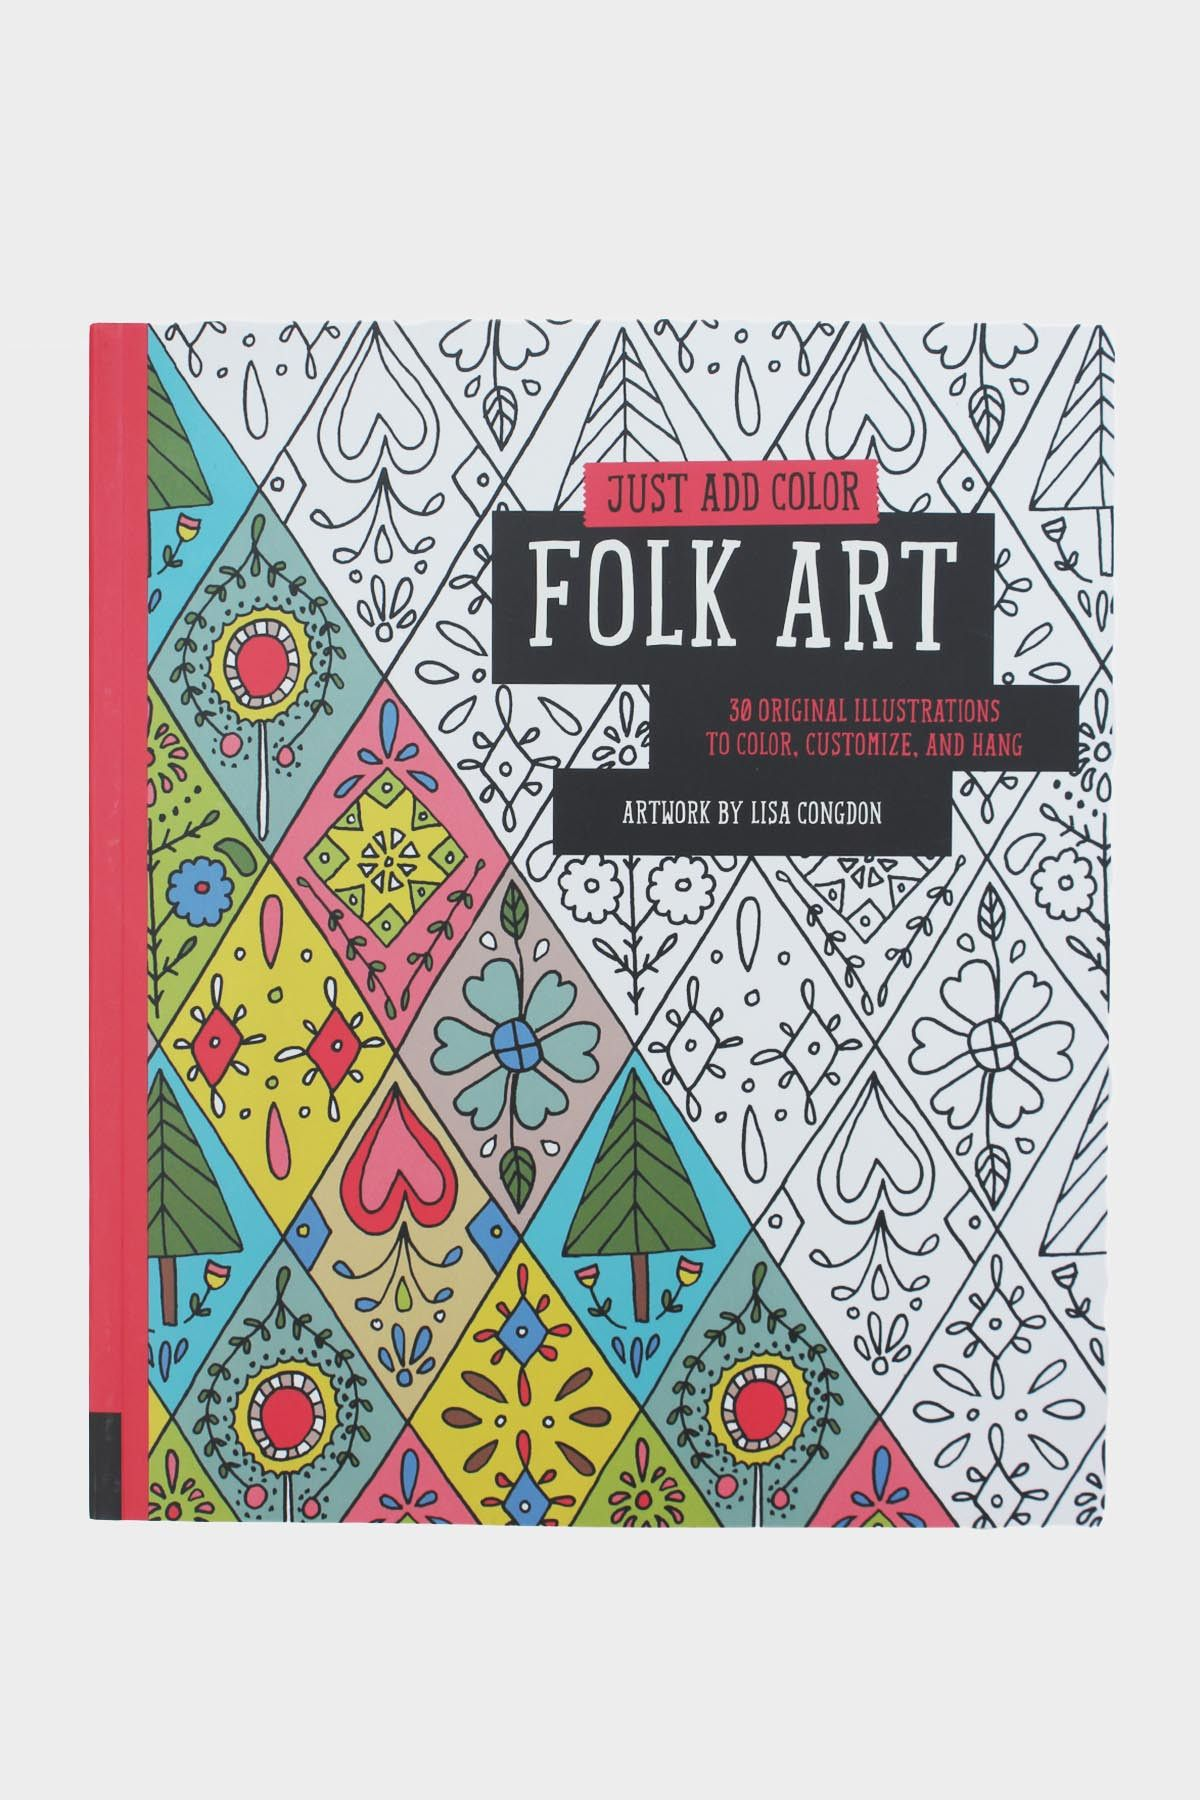 How to color grown up coloring books - Folk Art Coloring Book Free Coloringadult